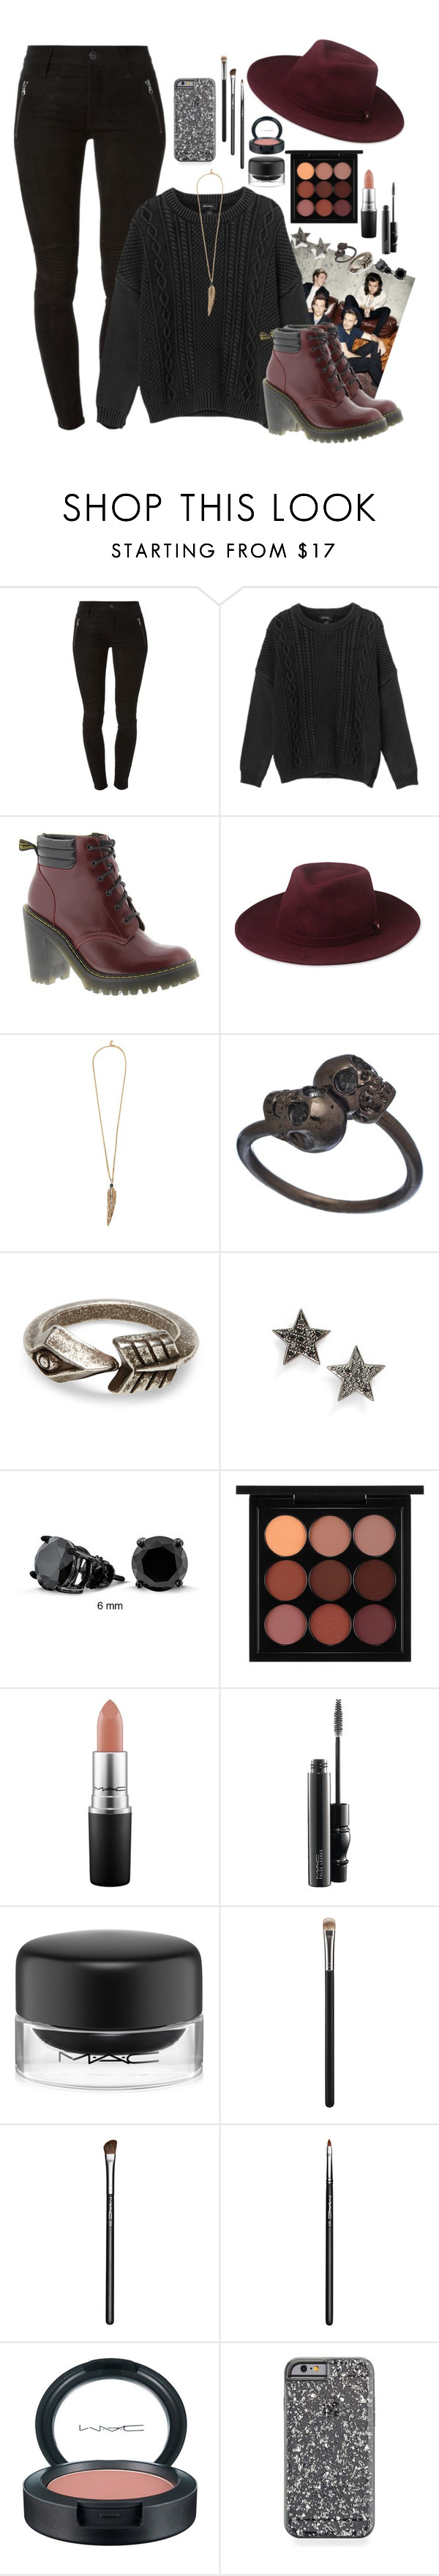 """""""▫ we could be the greatest team ▫"""" by jazziwheat ❤ liked on Polyvore featuring Hudson, Monki, Dr. Martens, Whistles, Roberto Cavalli, Michael Spirito, TOMS, Dana Rebecca Designs, Bling Jewelry and MAC Cosmetics"""